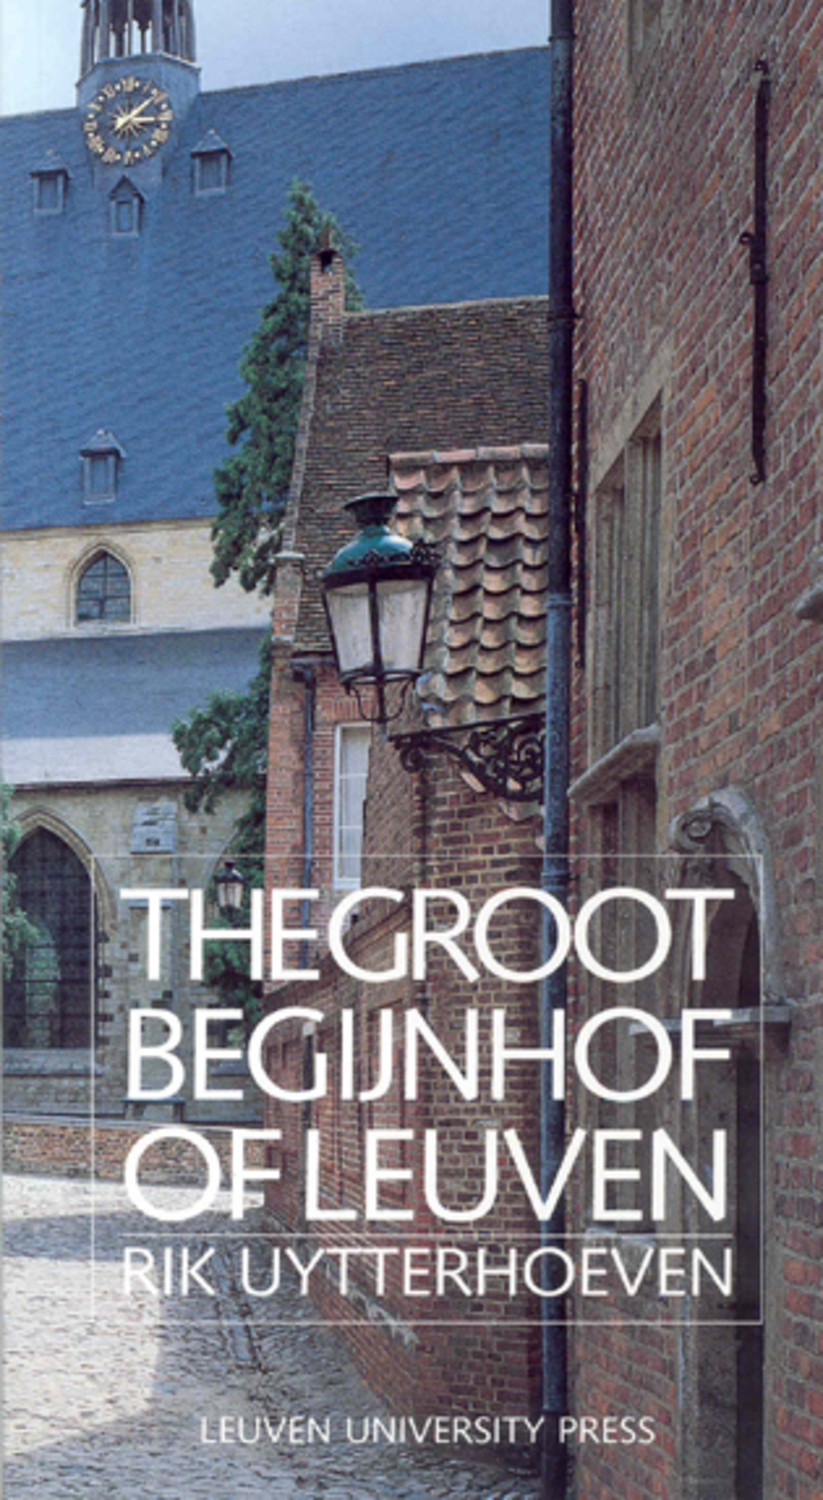 The Groot Begijnhof of Leuven